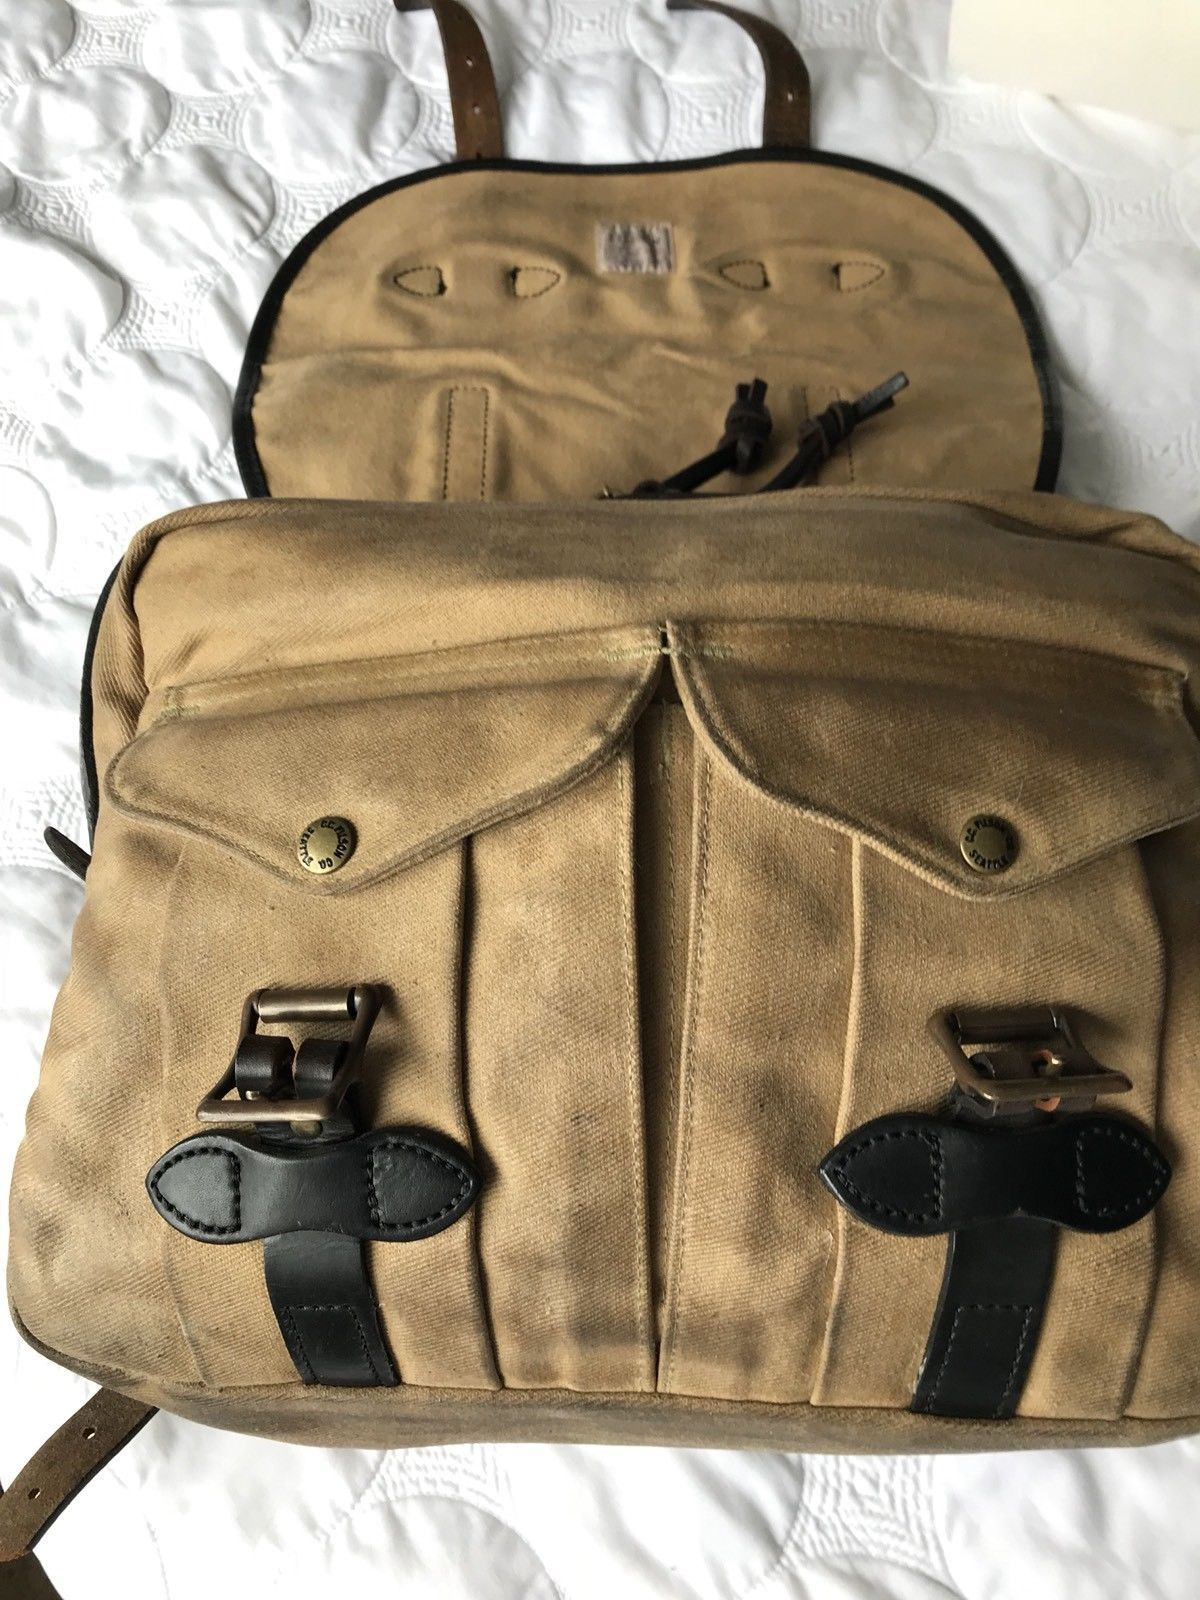 67941d72d5 Filson Vintage Small Carry On Bag 240 Amazing Customized Feature ...